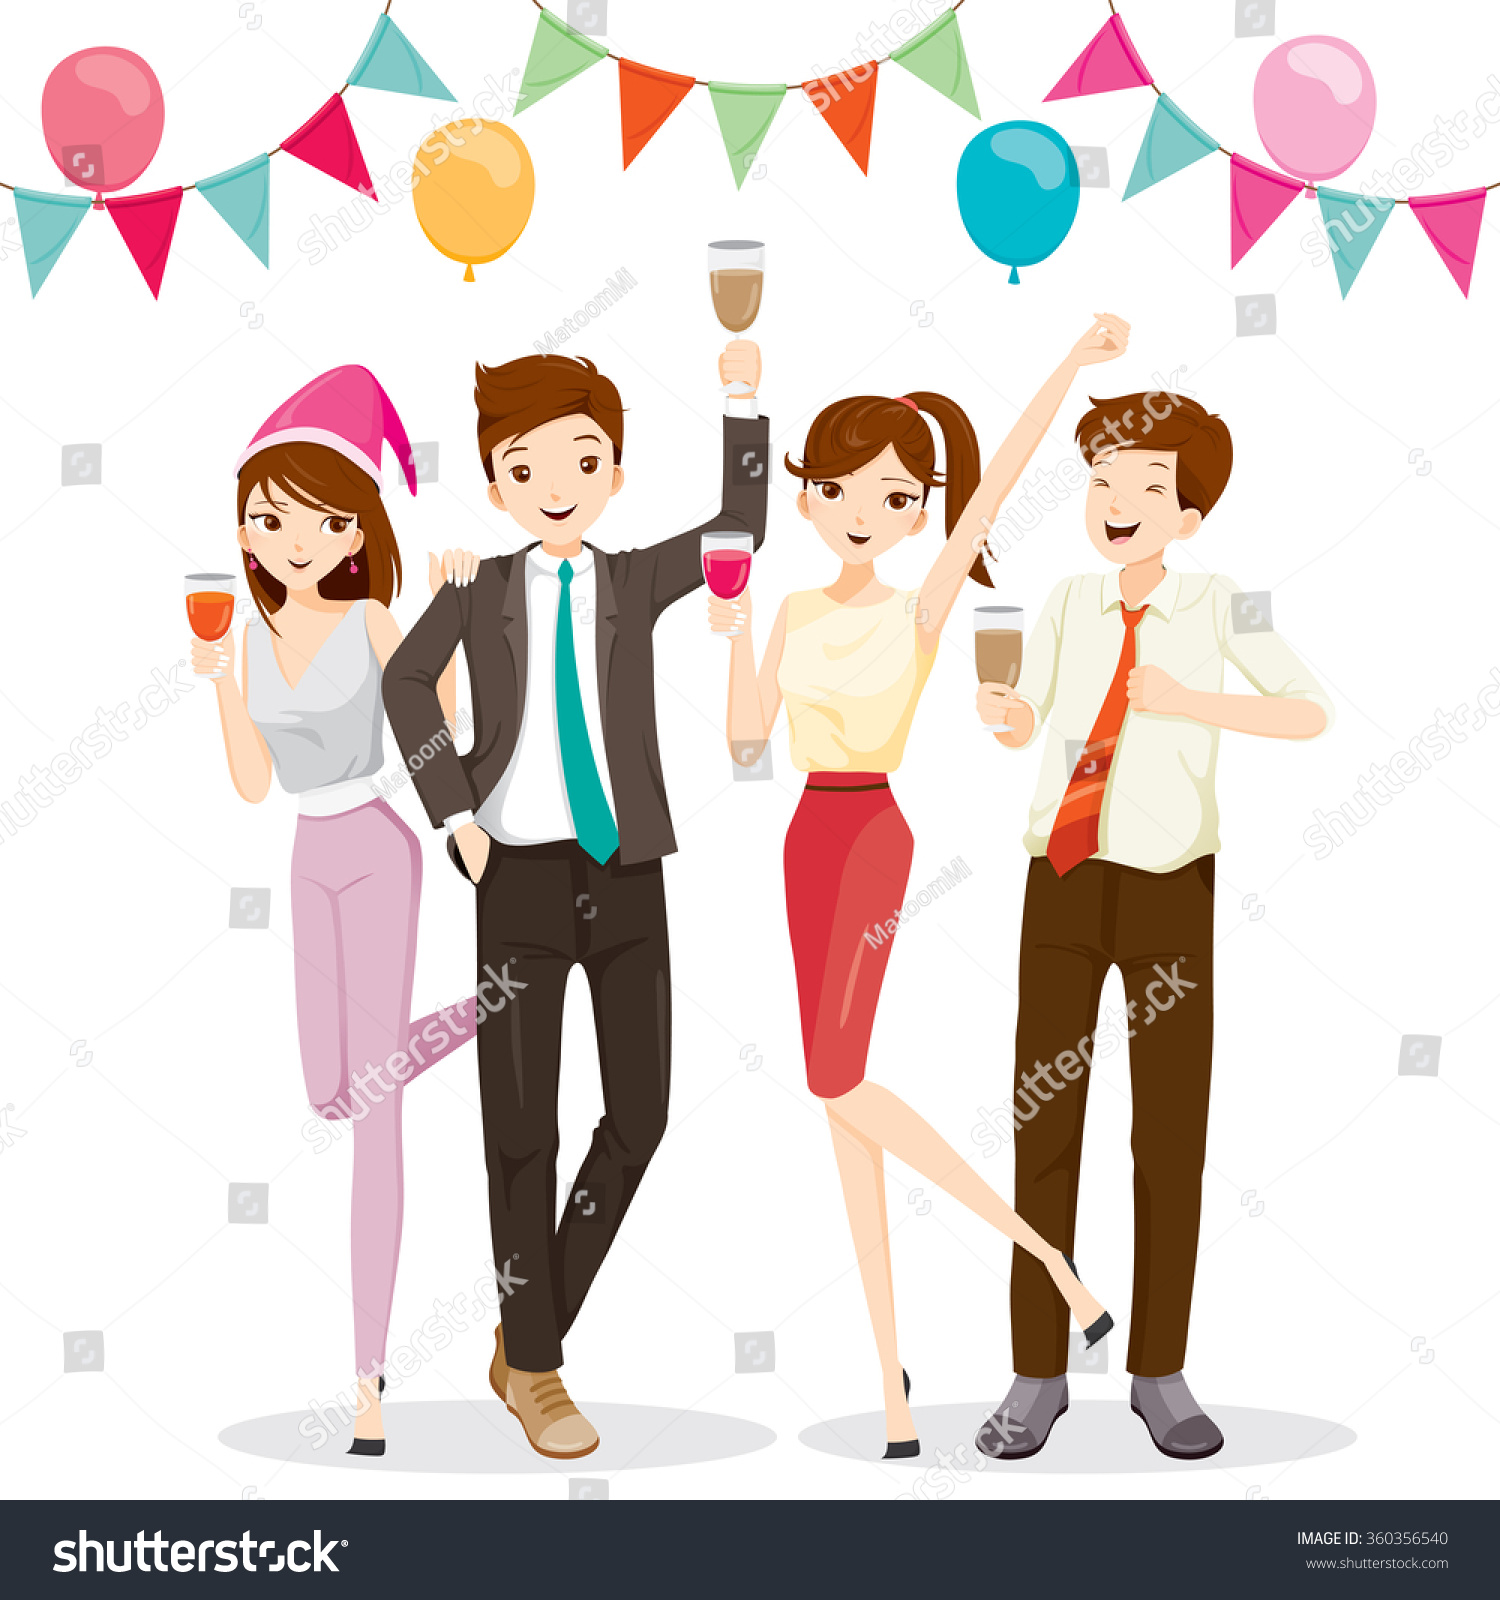 man w fun party drink corporate stock vector  man and w fun in party drink corporate banquet feast company